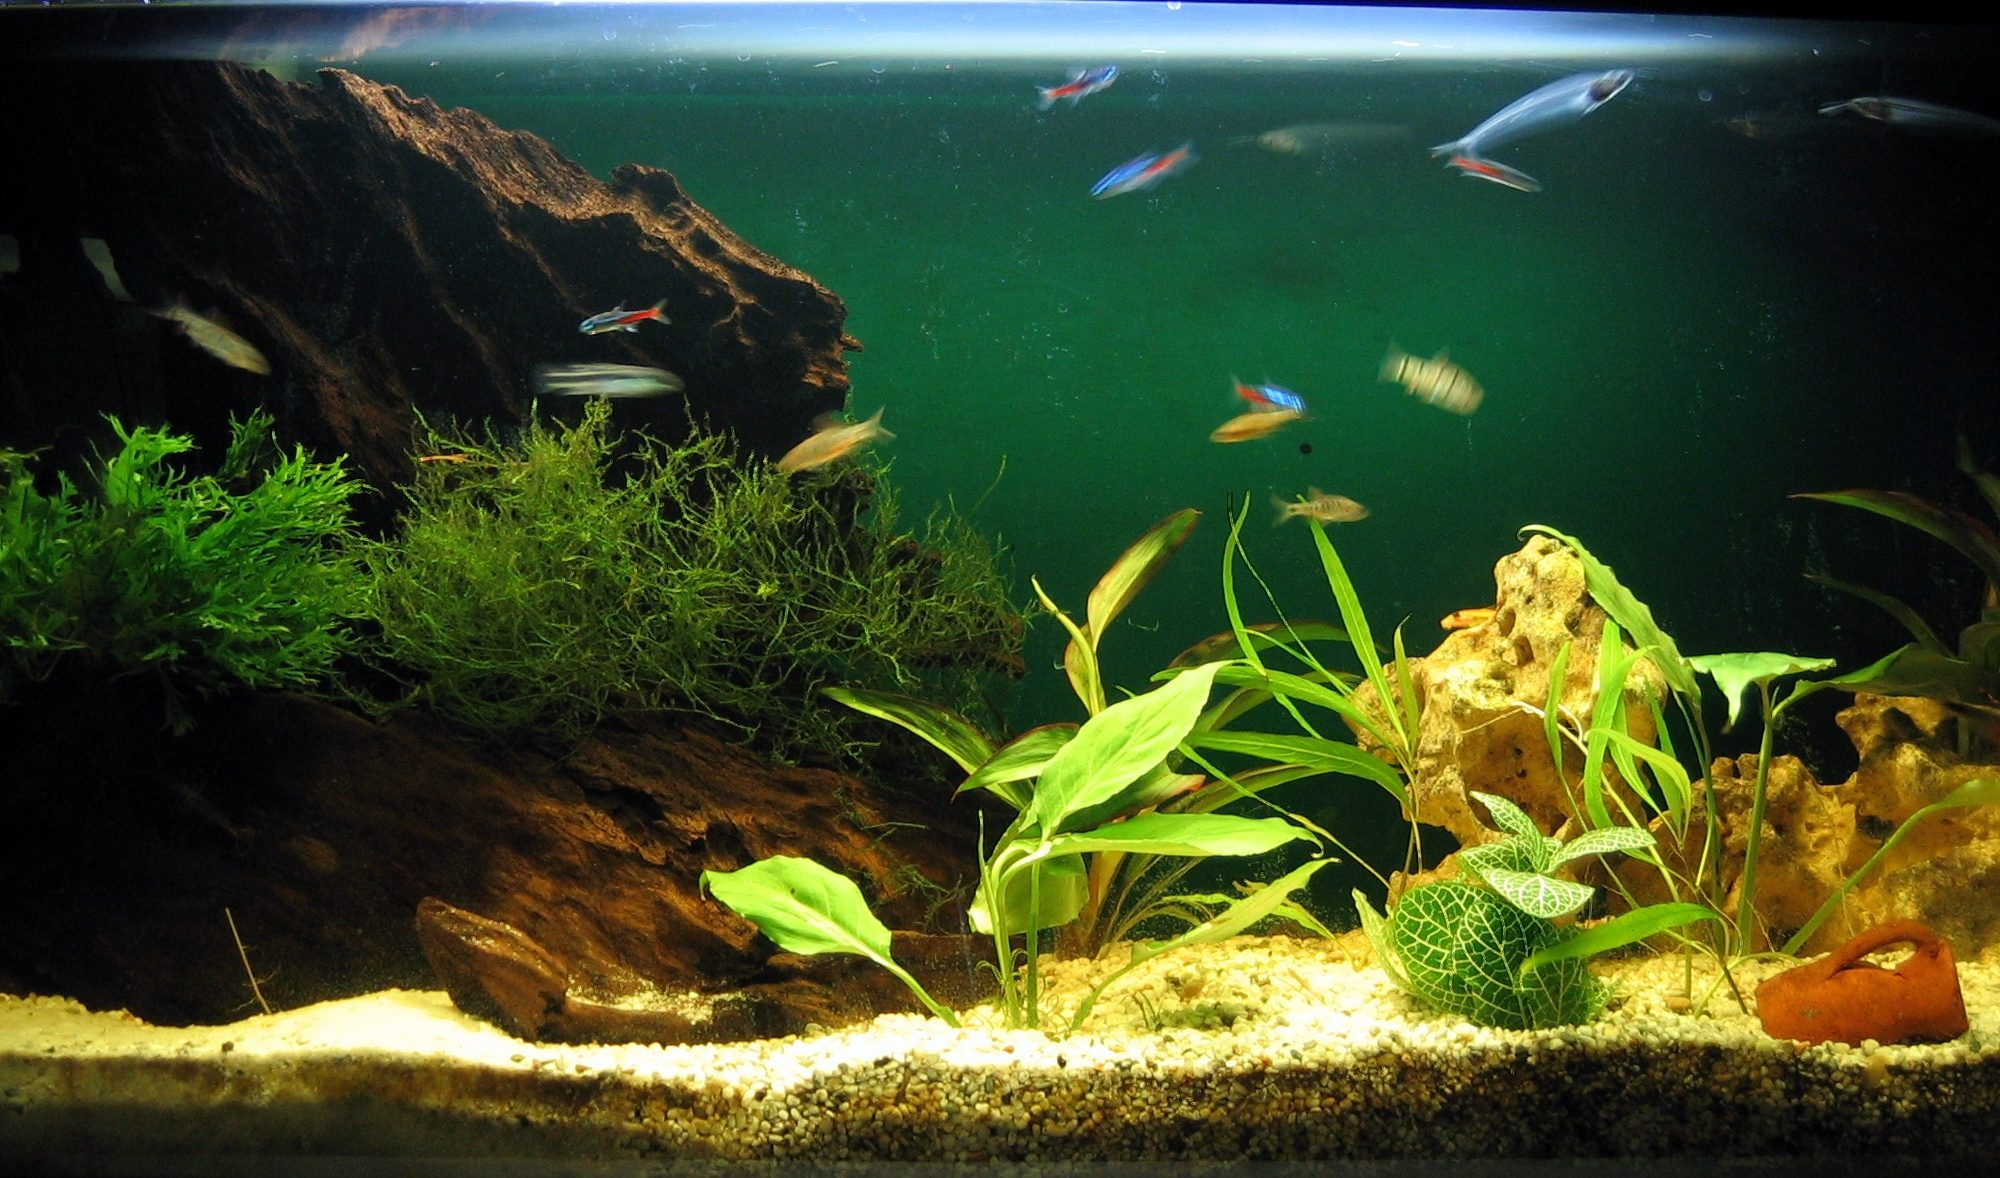 Aquariumdeco with root and stone